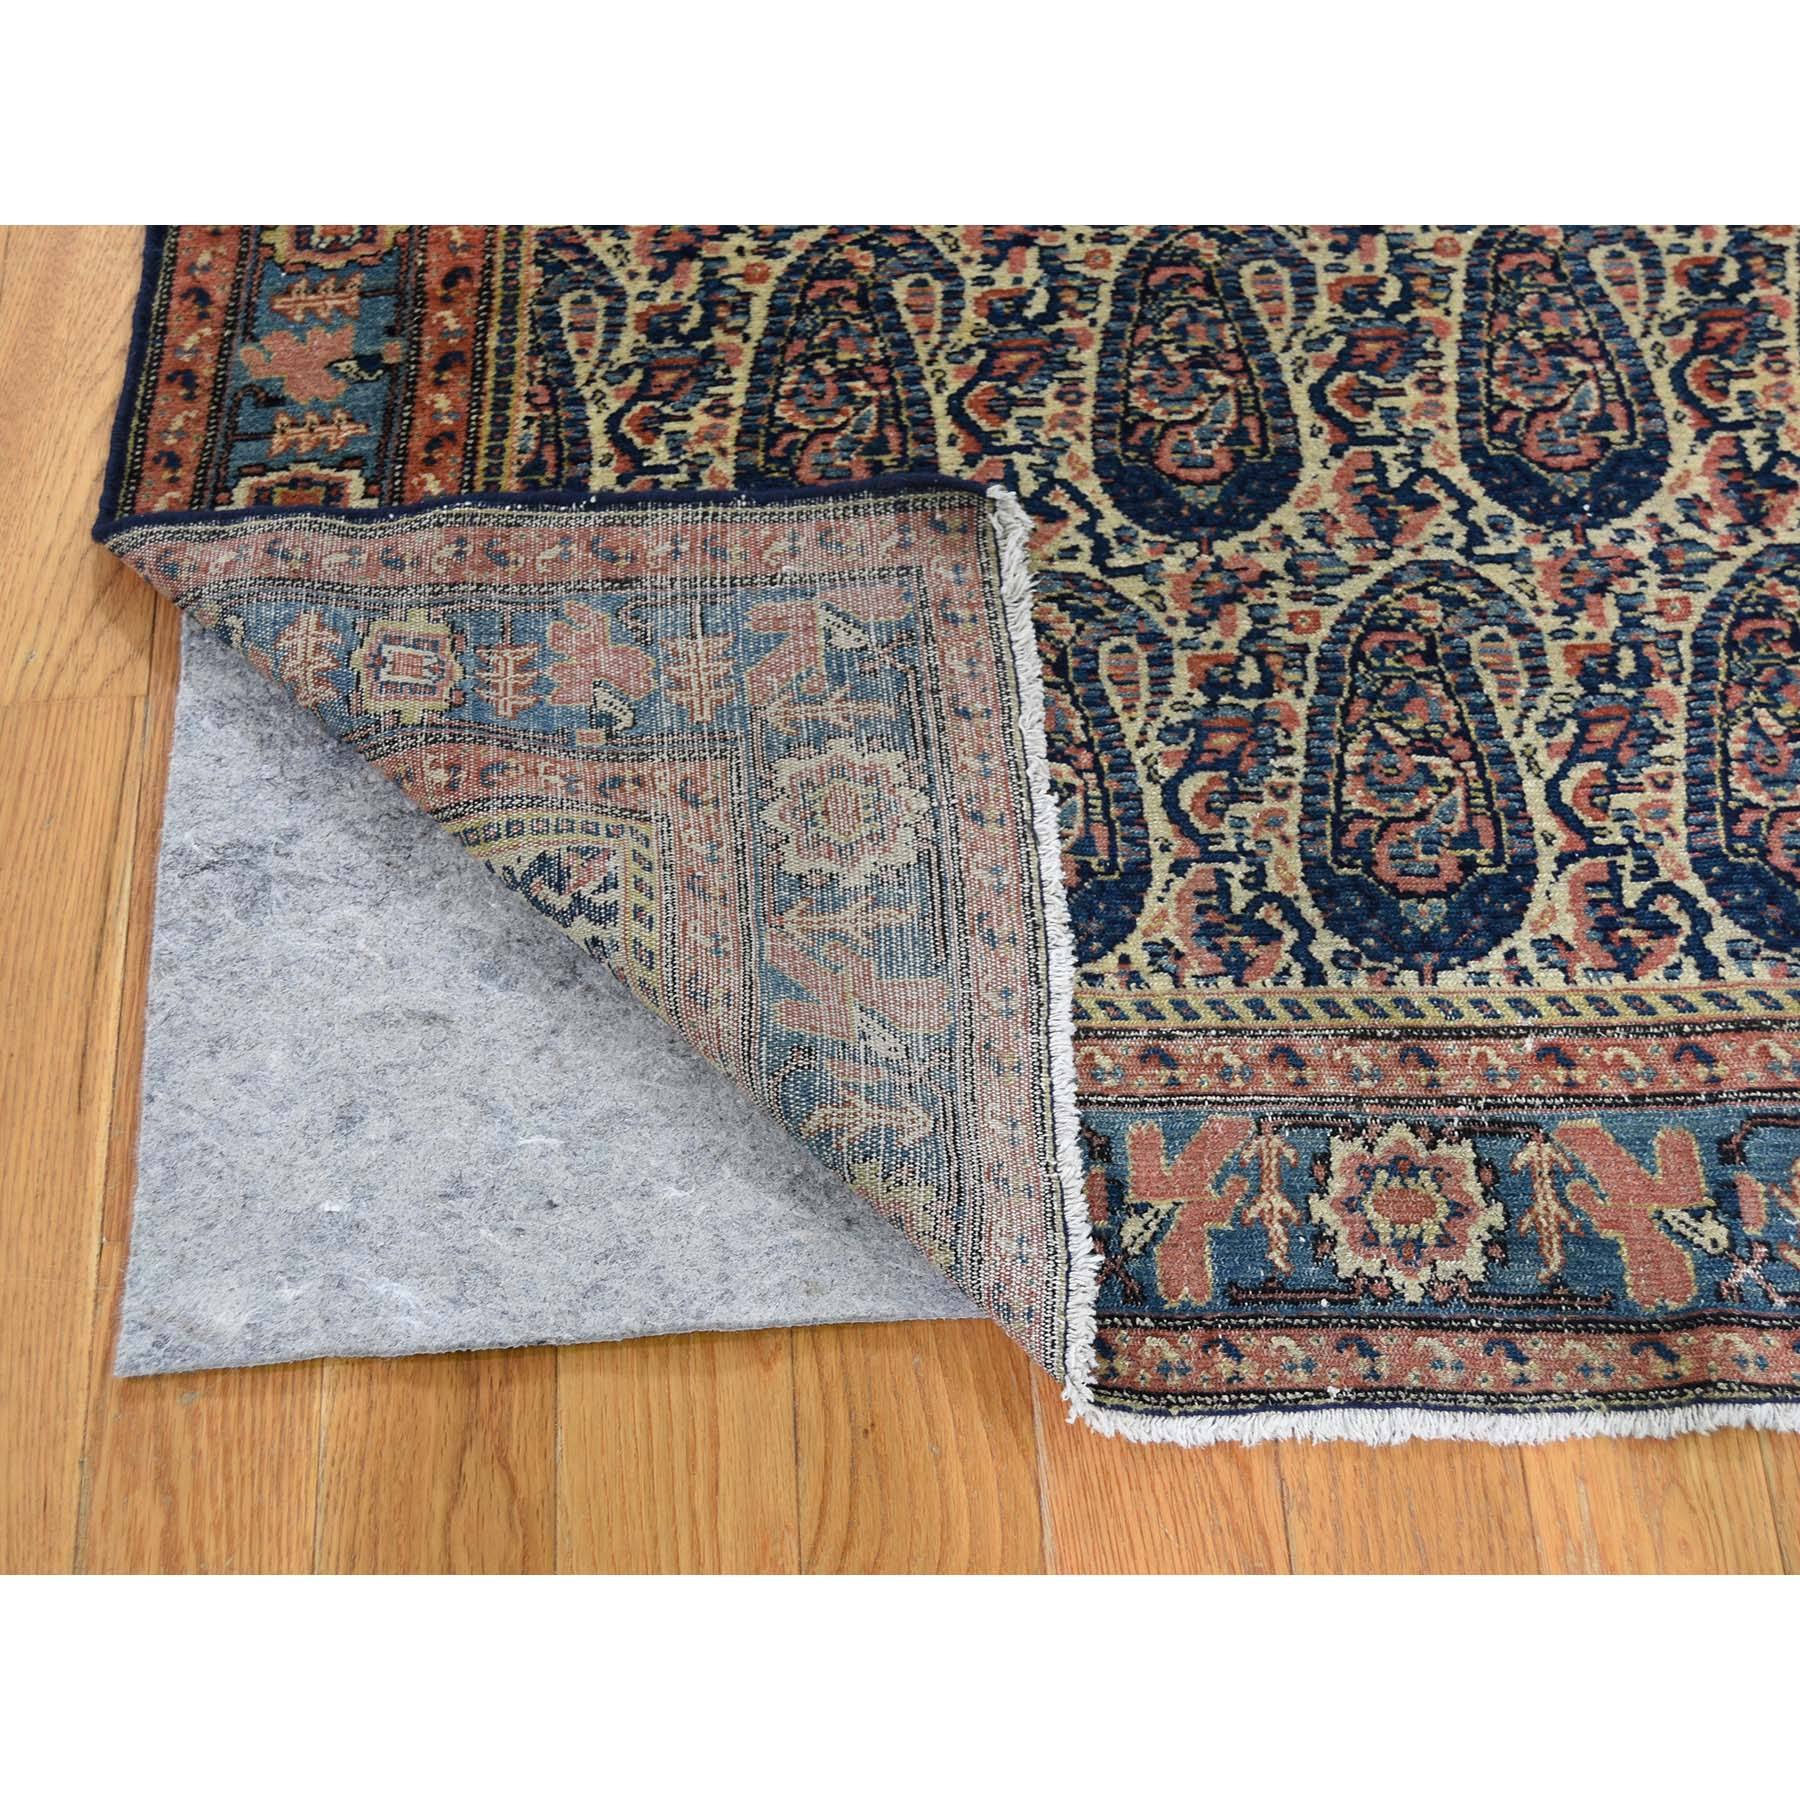 "Handmade Antique Rectangle Rug > Design# SH46437 > Size: 4'-4"" x 6'-4"" [ONLINE ONLY]"